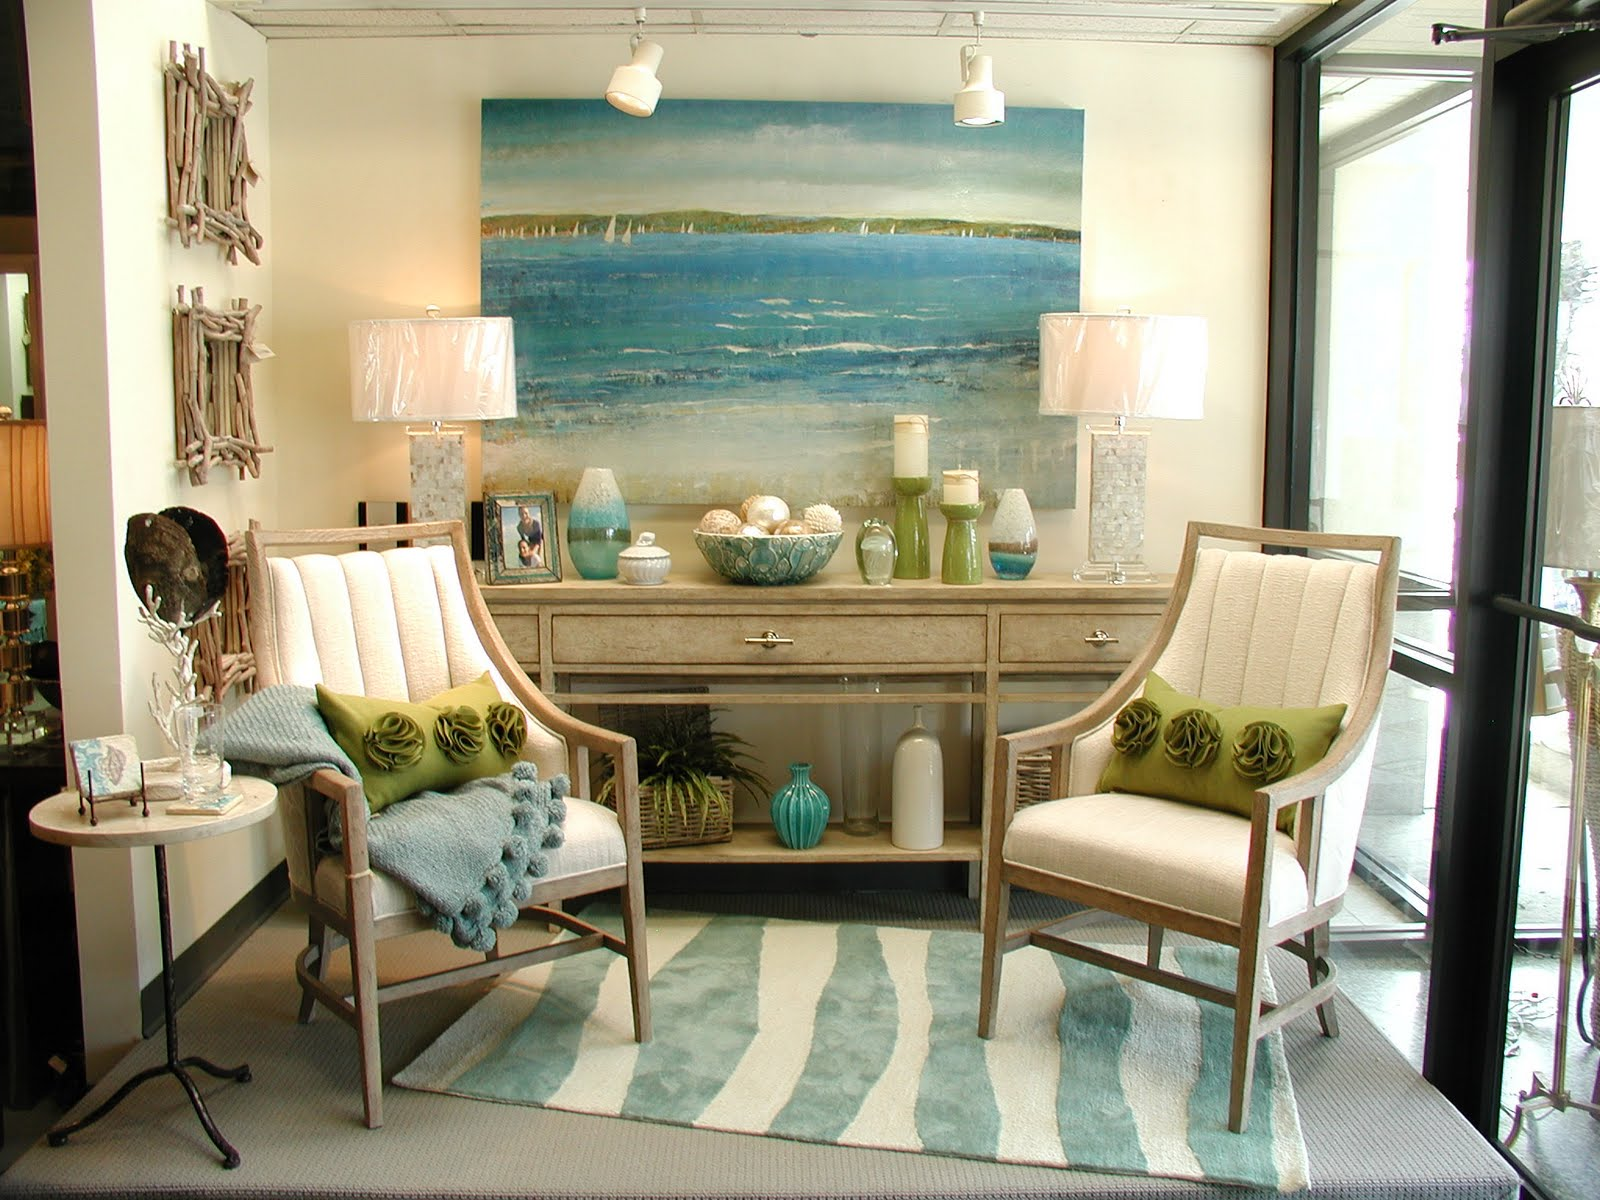 details of design interior design in annapolis this summer